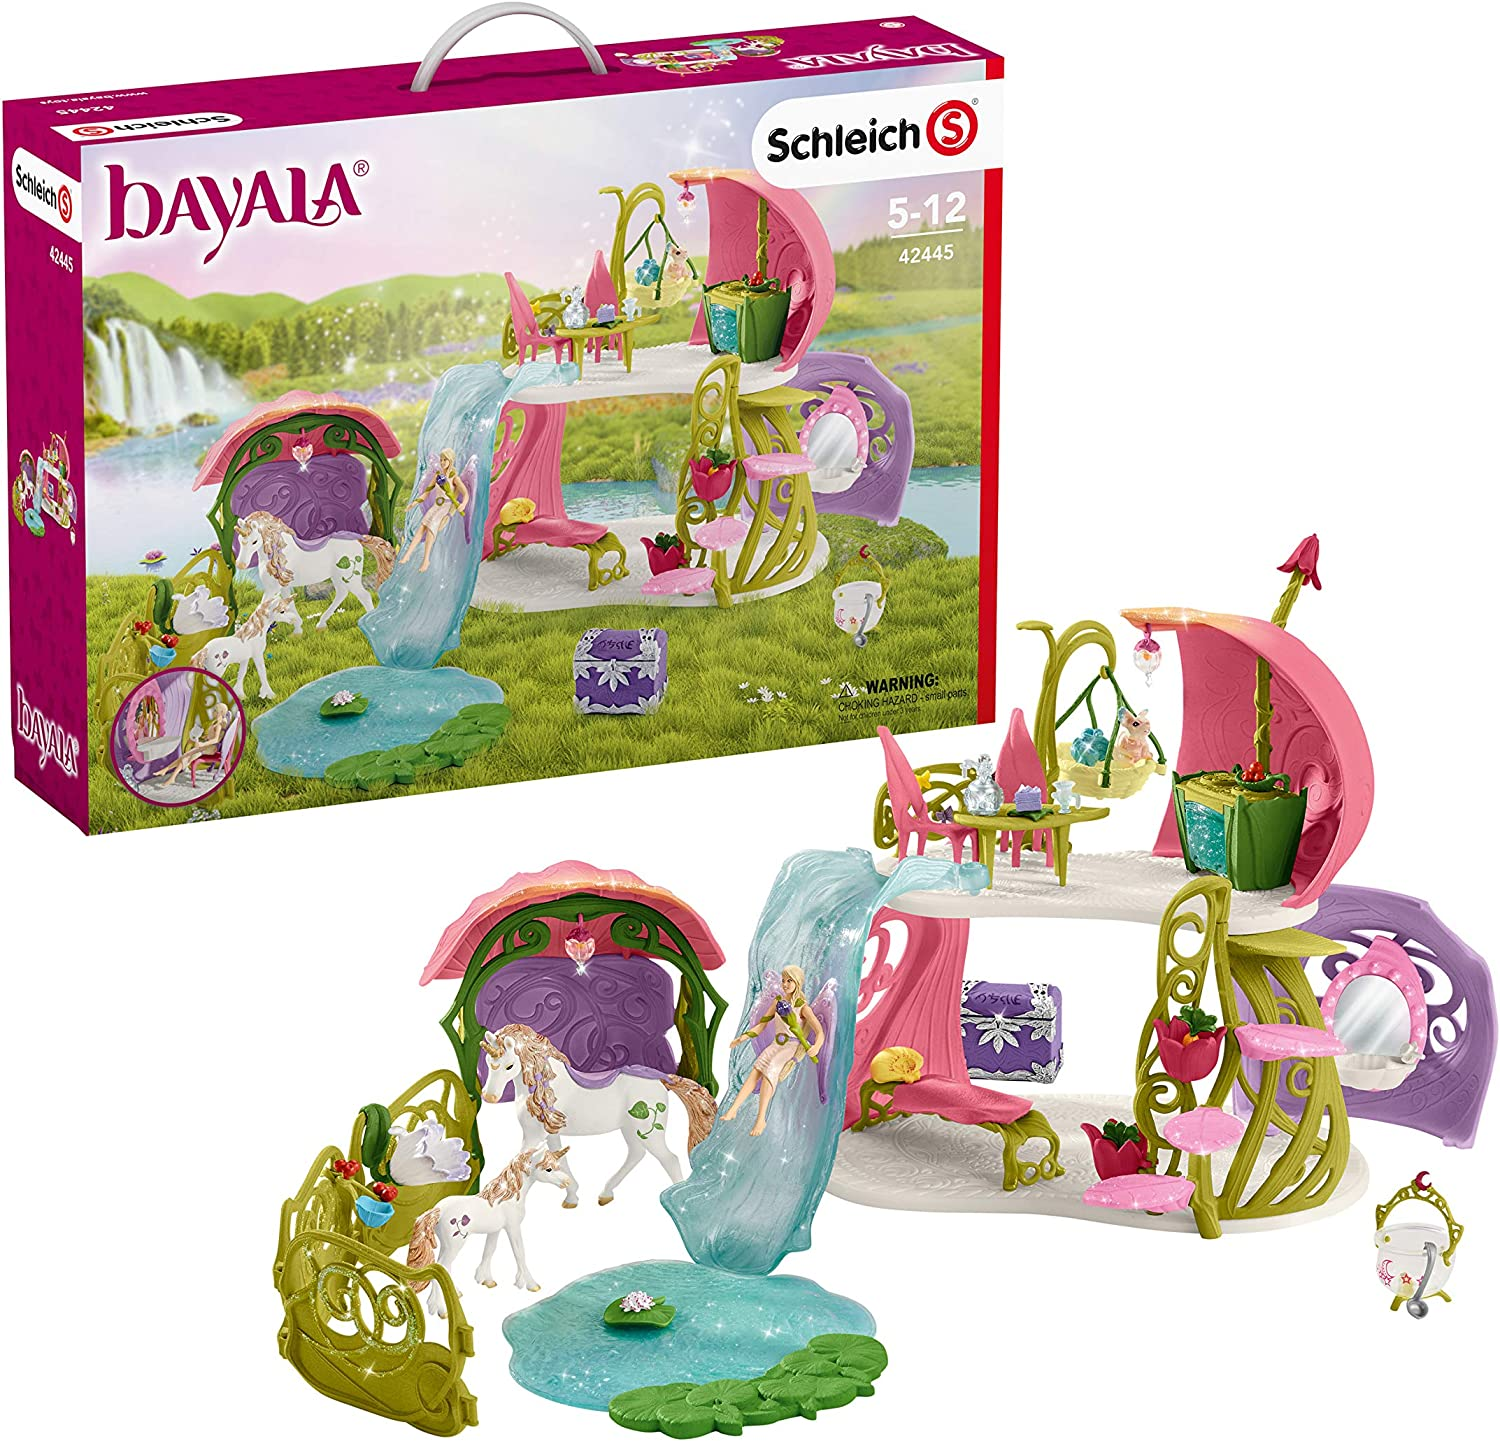 Schleich bayala 54-Piece Fairy Dollhouse & Stable with Unicorns Toy Set for Kids Ages 5-12